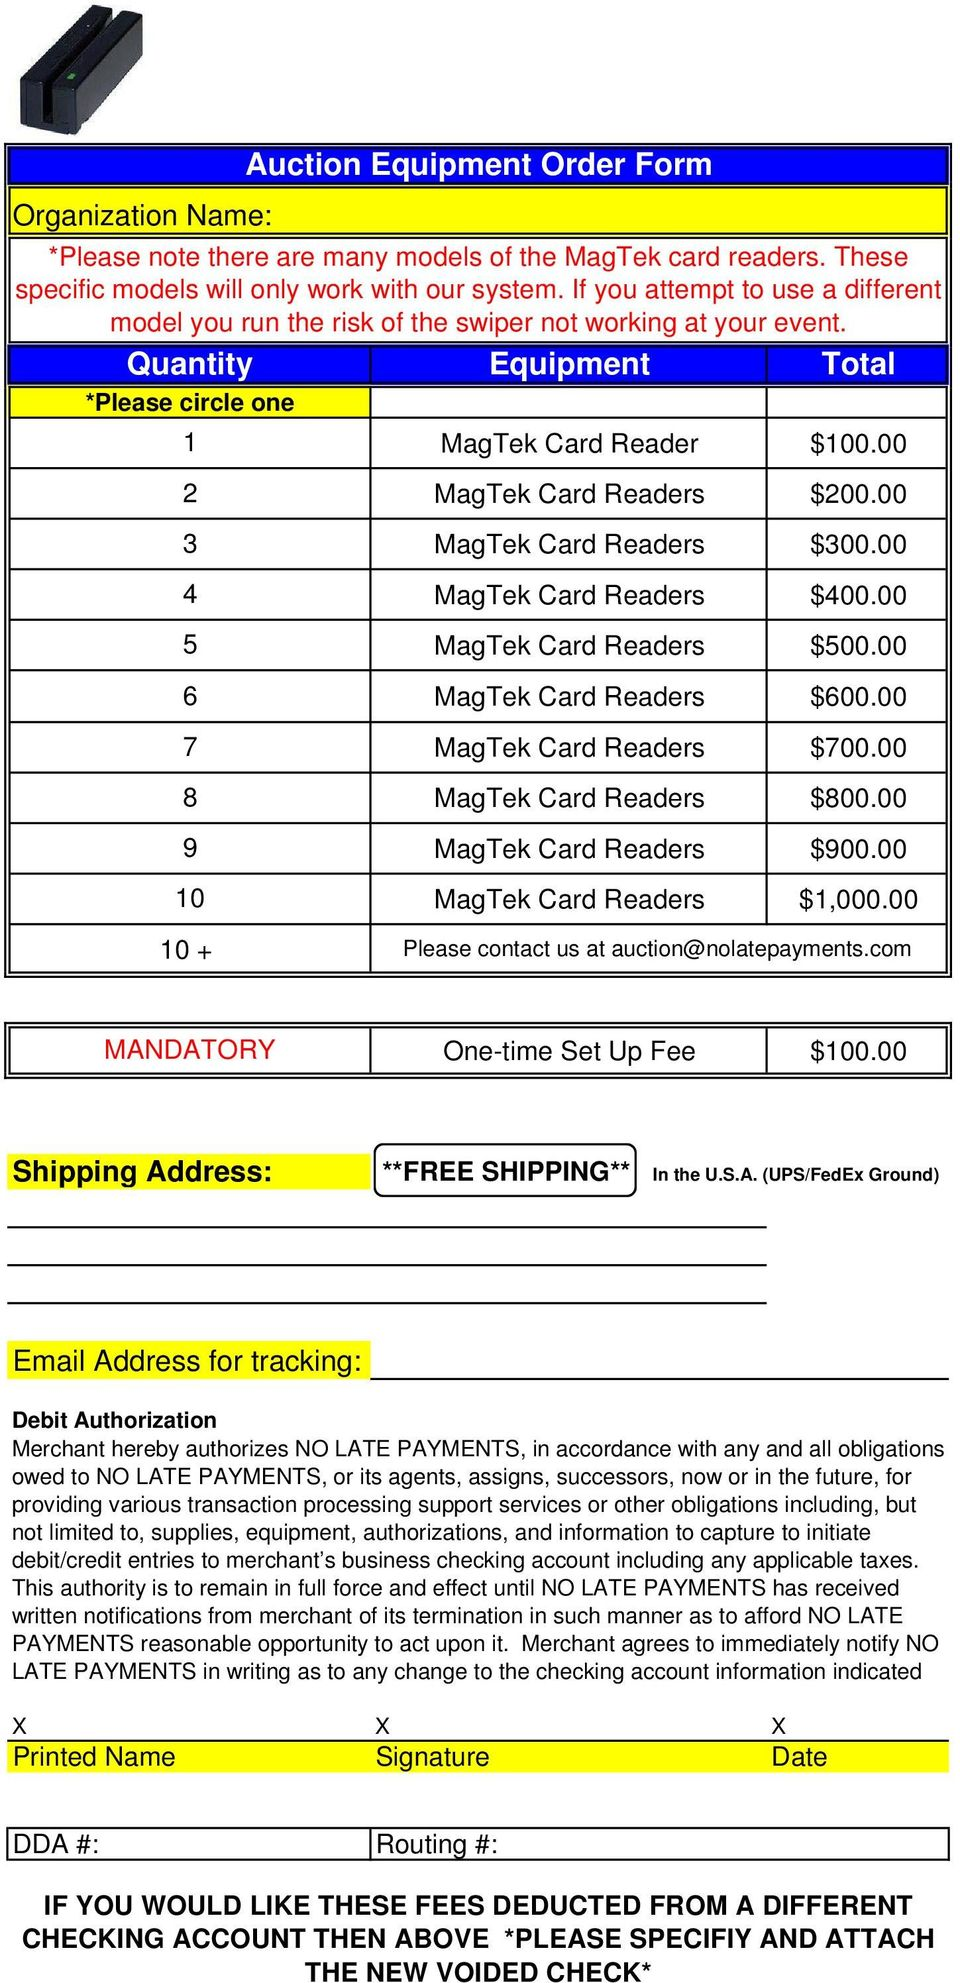 Quantity Equipment Total *Please circle one 1 2 3 4 5 6 7 8 9 10 10 + Auction Equipment Order Form MagTek Card Reader $100.00 MagTek Card Readers $200.00 MagTek Card Readers $300.